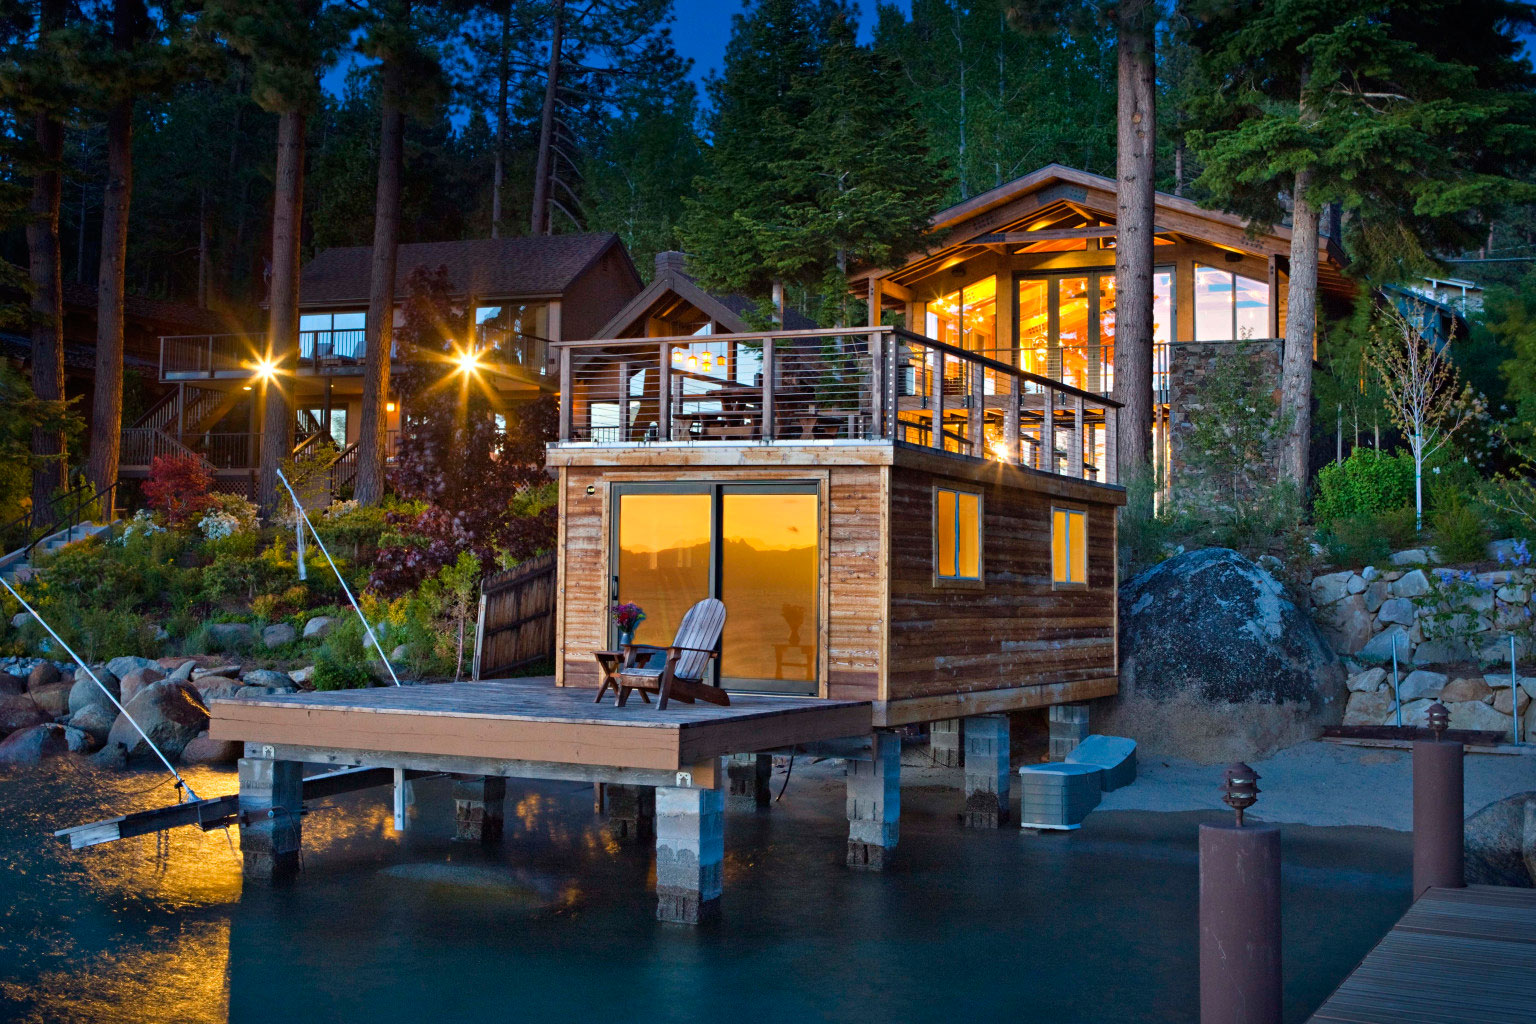 lake cabin design ideas that will wow you - Cabin Design Ideas